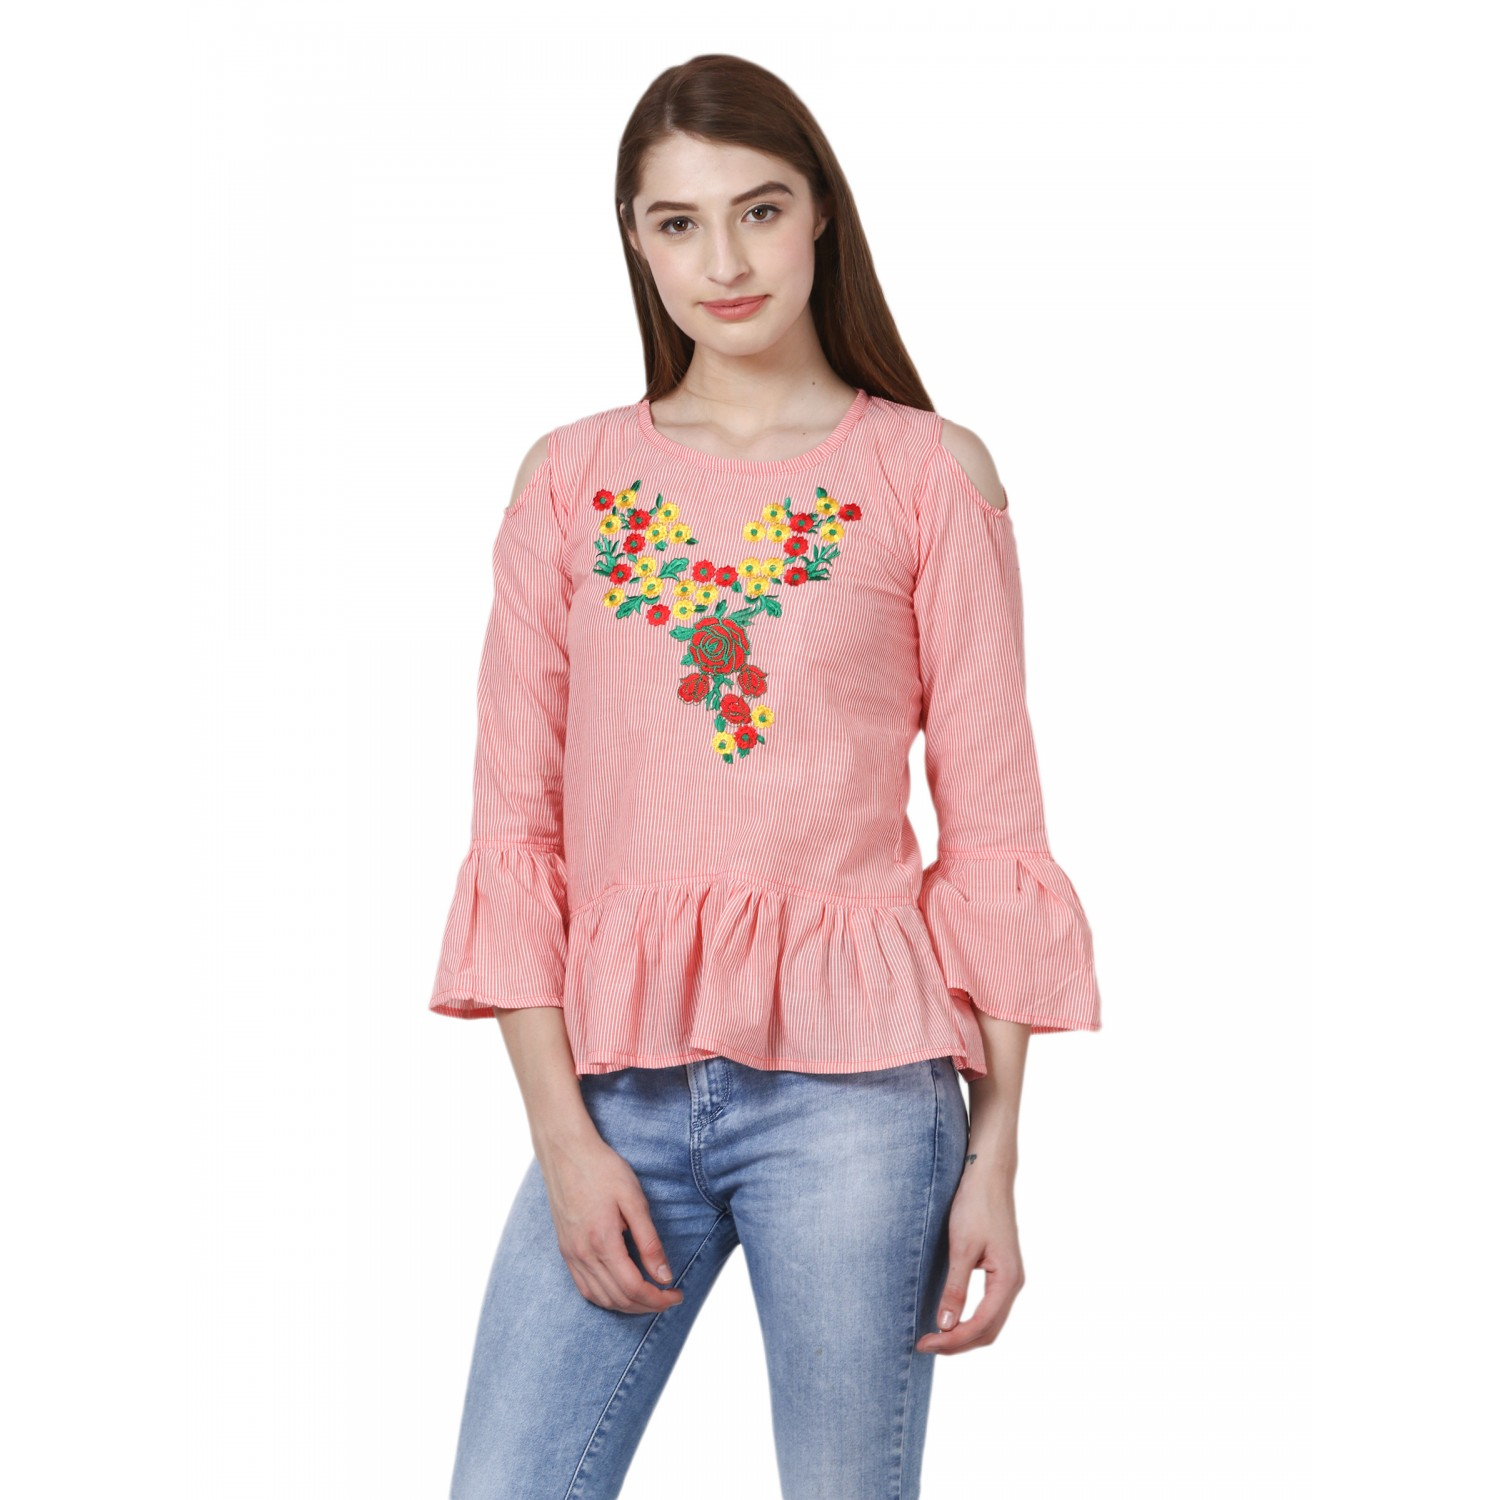 Tangy Love Top with floral emboidered